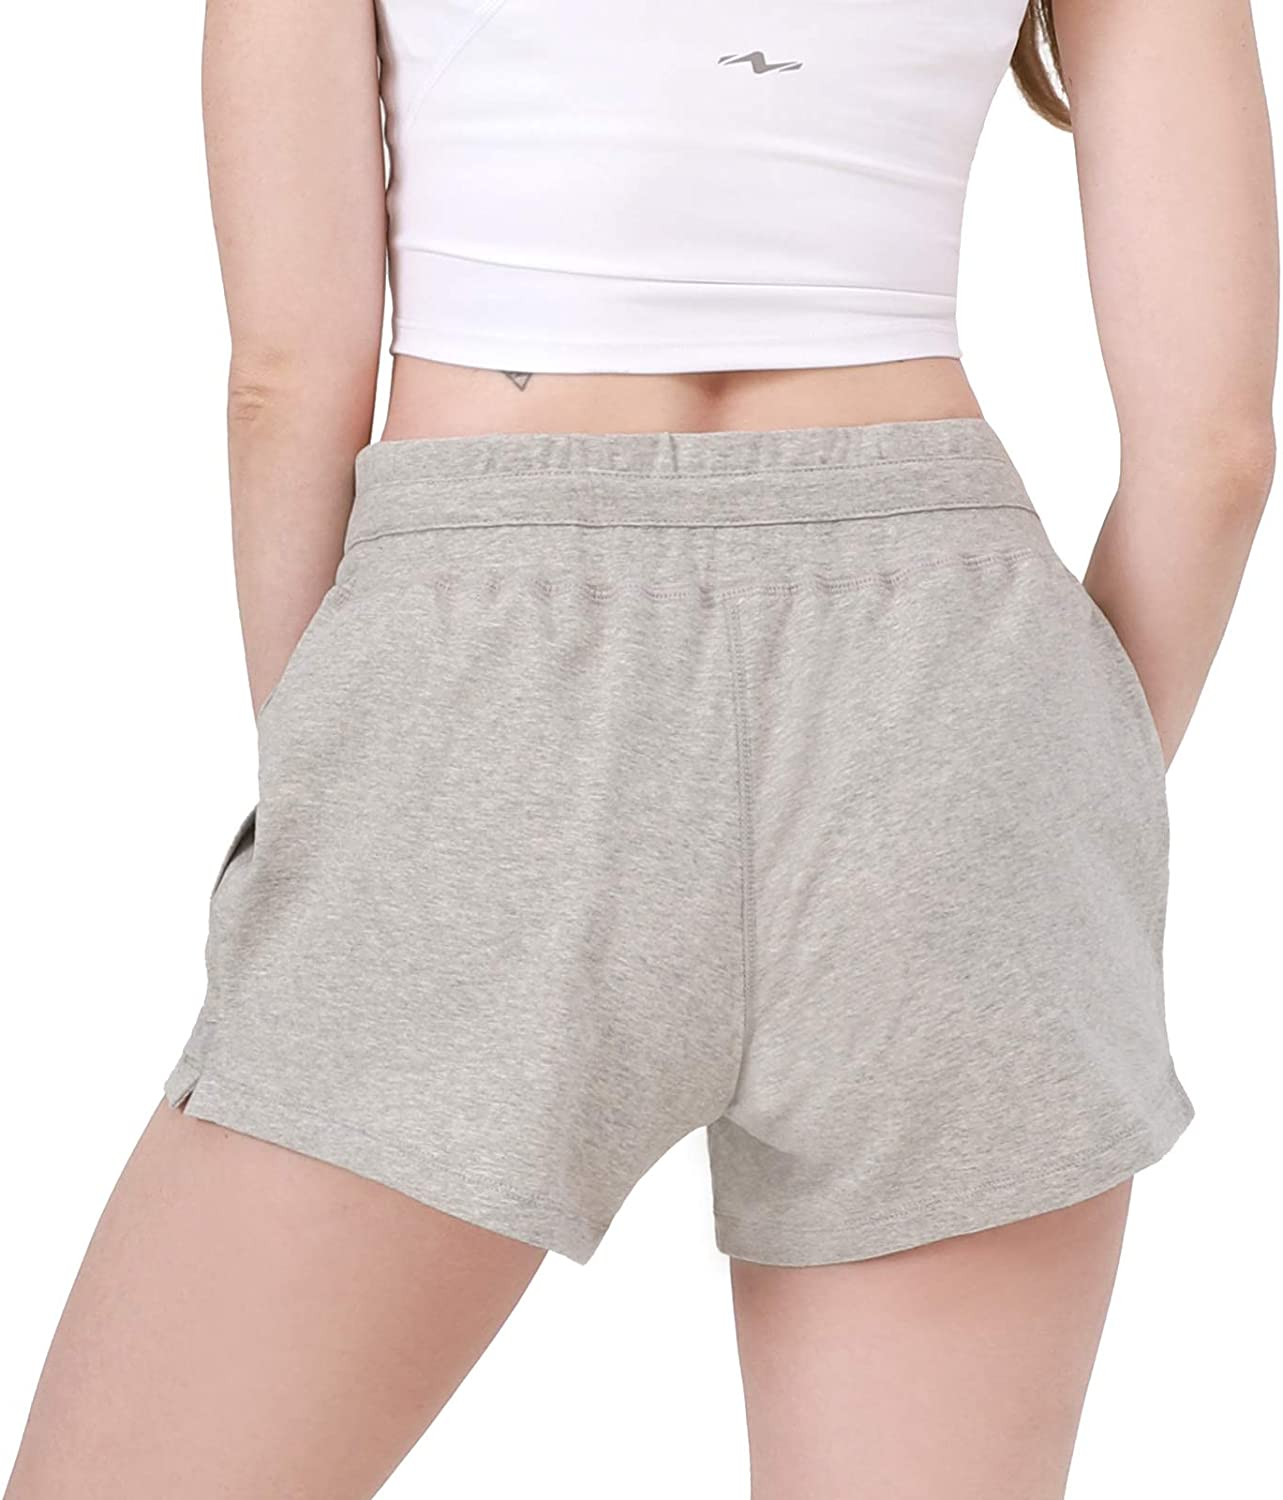 Nomolen Womens 3 Workout Lounge Shorts Cotton Yoga Gym Athletic Running Activewear Sweat Shorts with Pockets